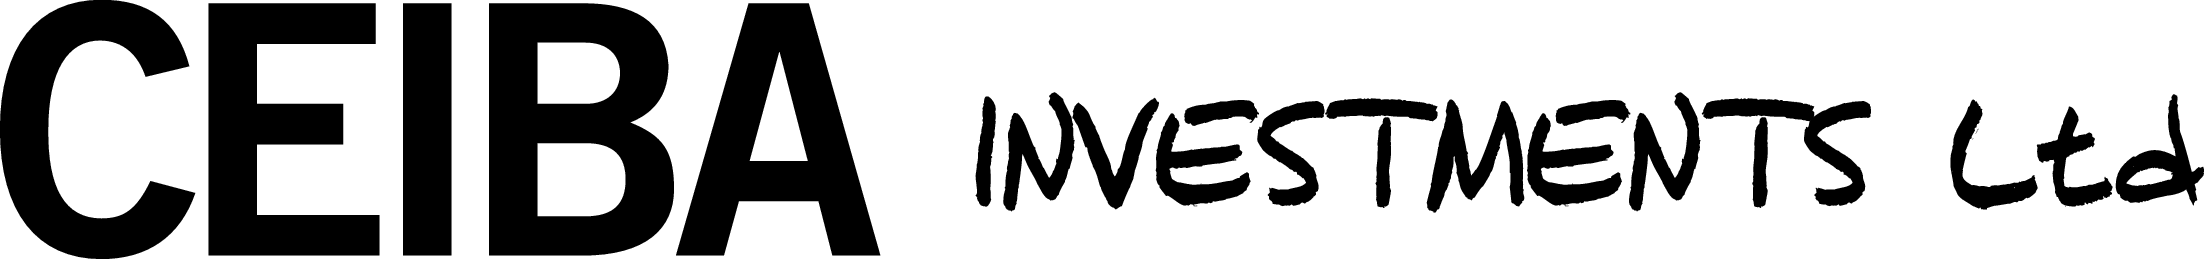 CEIBA INVESTMENTS LIMITED Logo